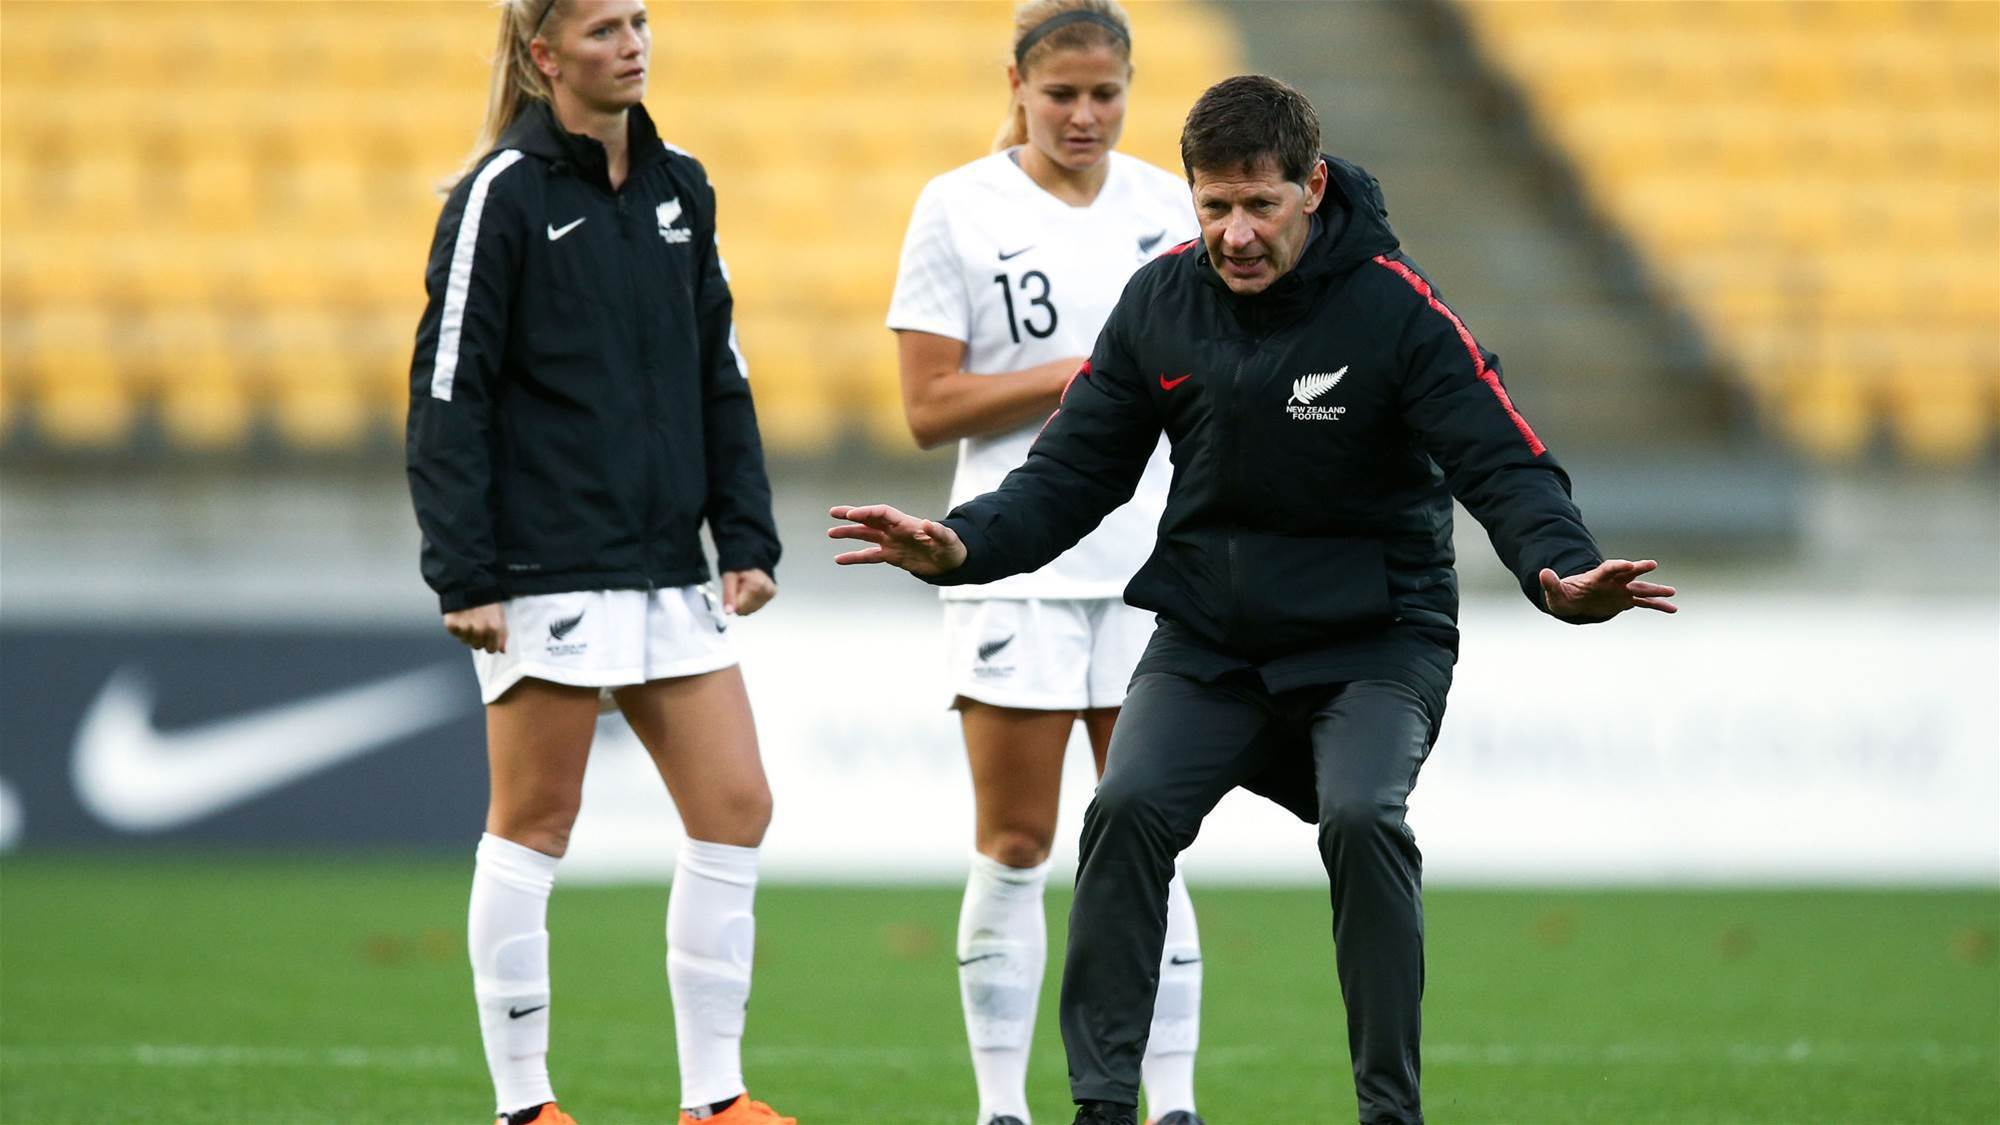 Investigation launched into Football Ferns environment